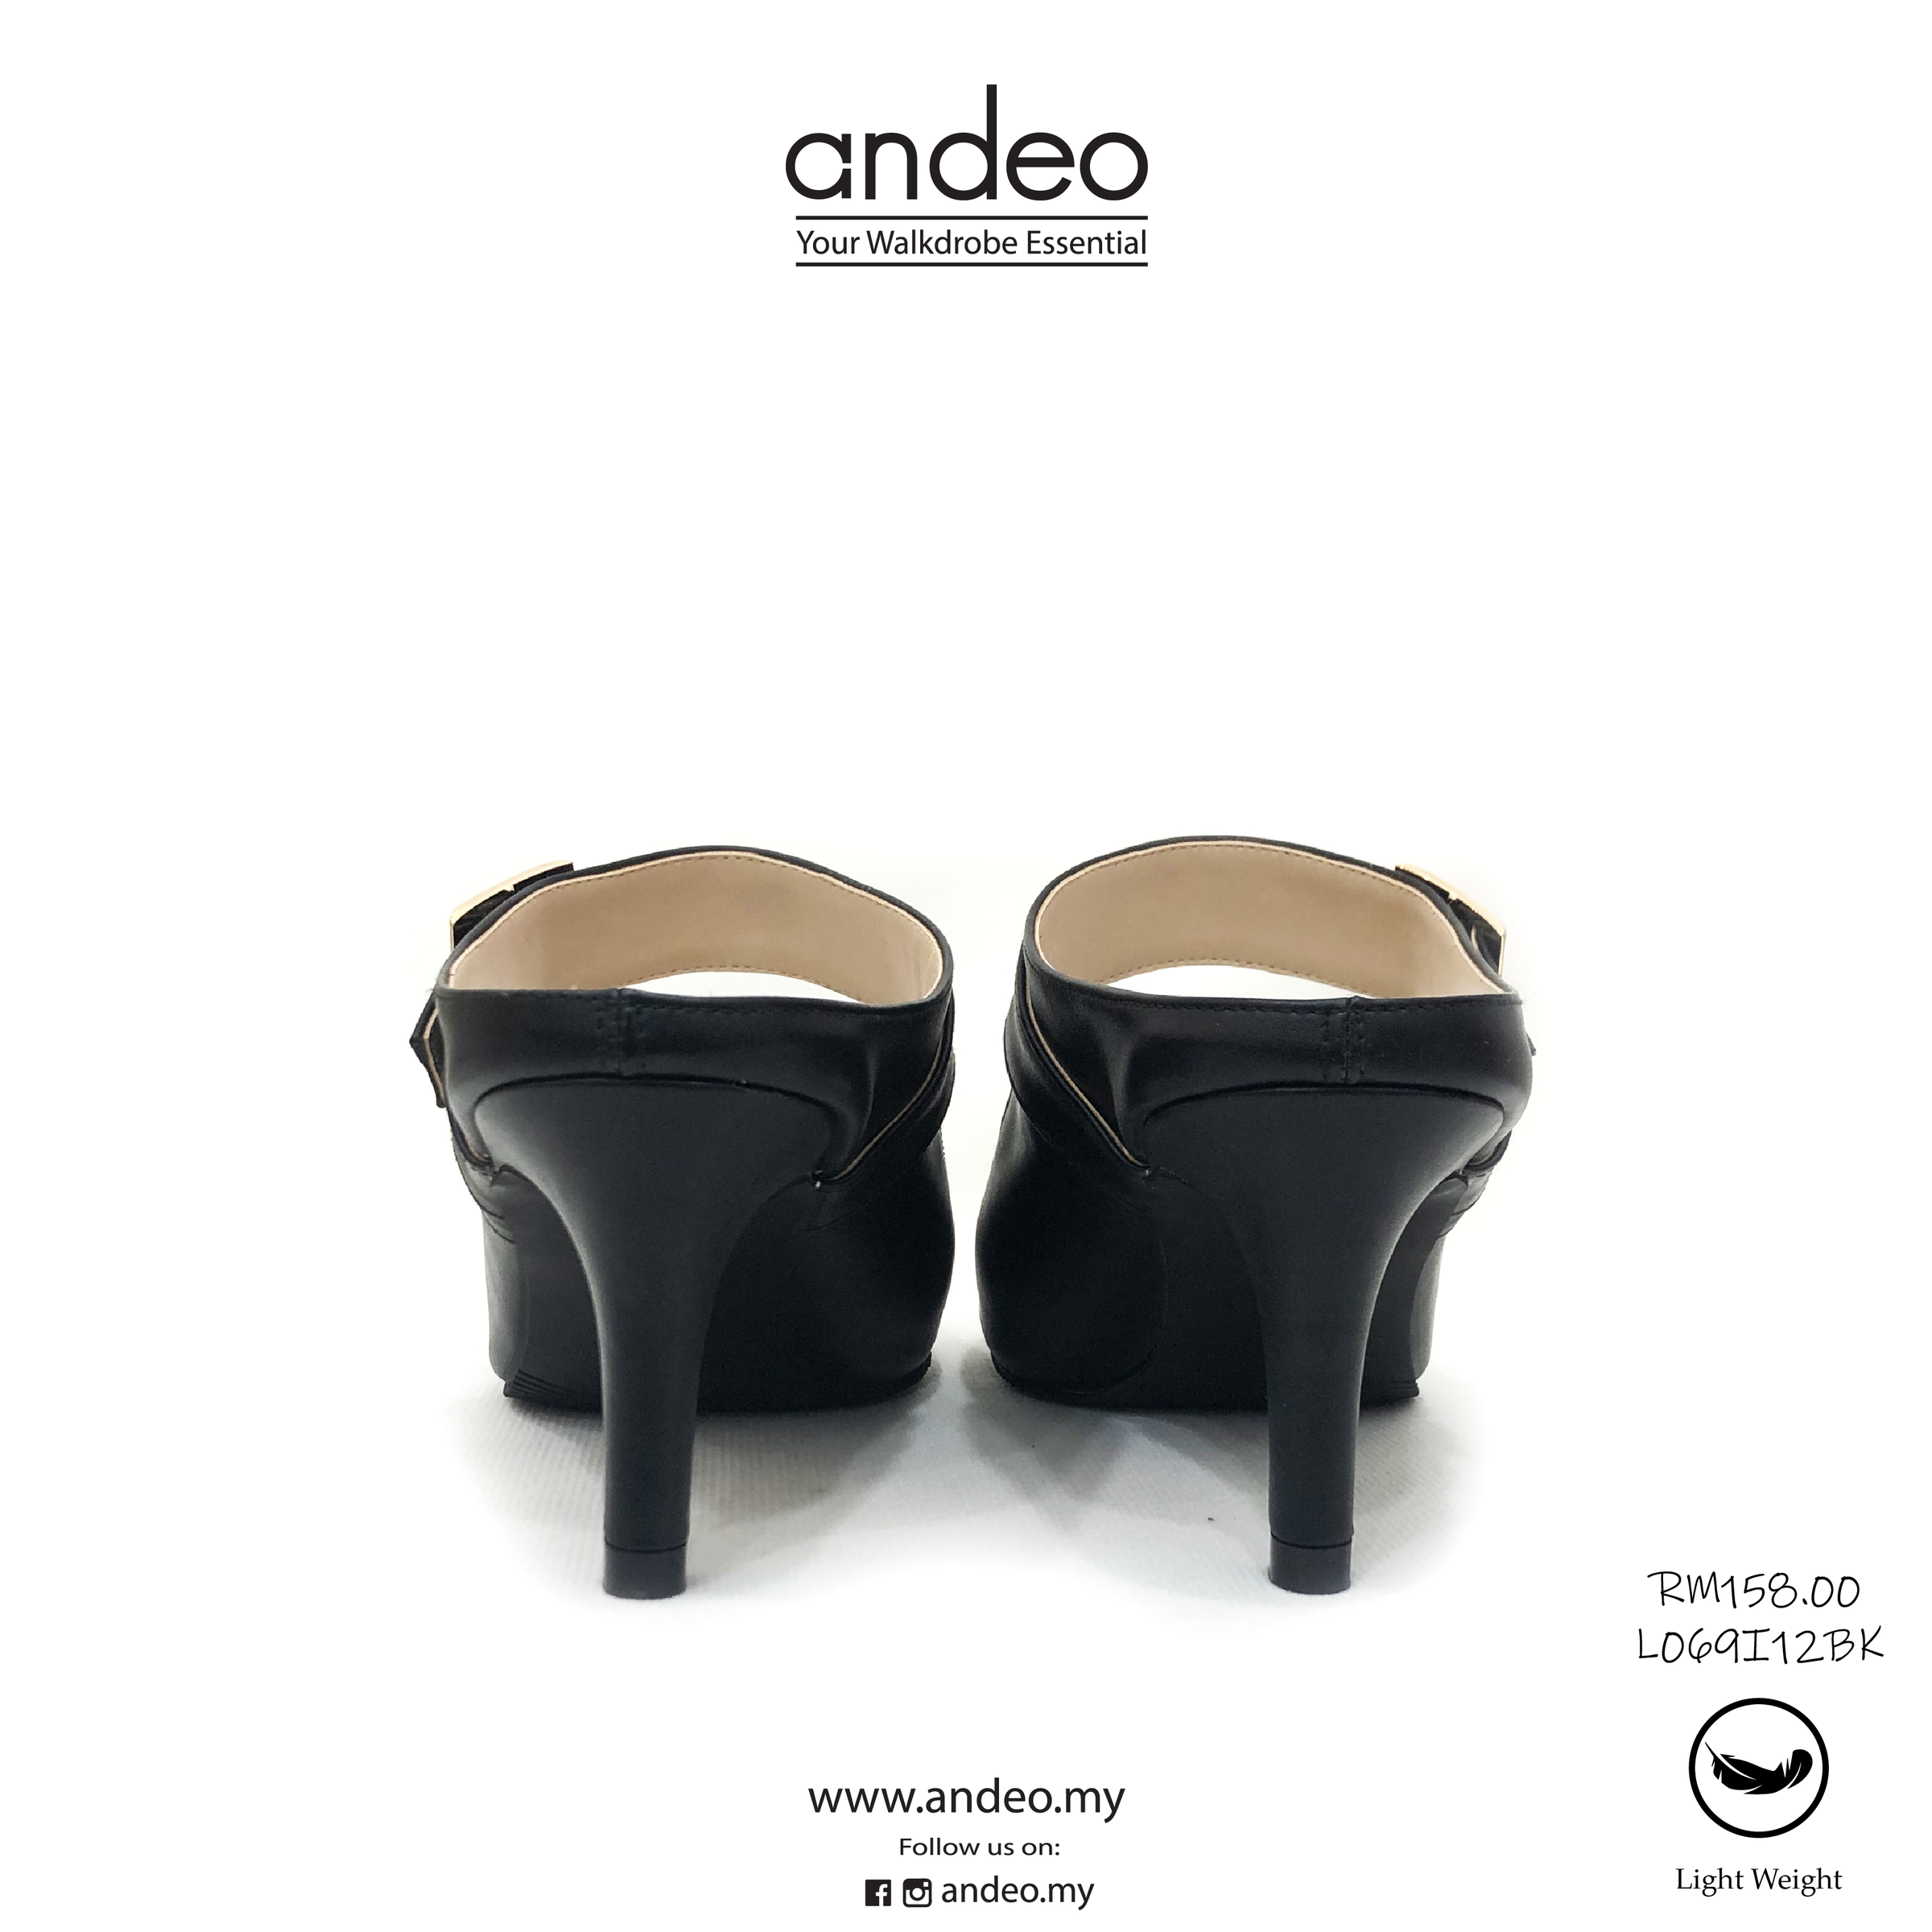 ANDEO FB PRODUCT L069I12-07.png